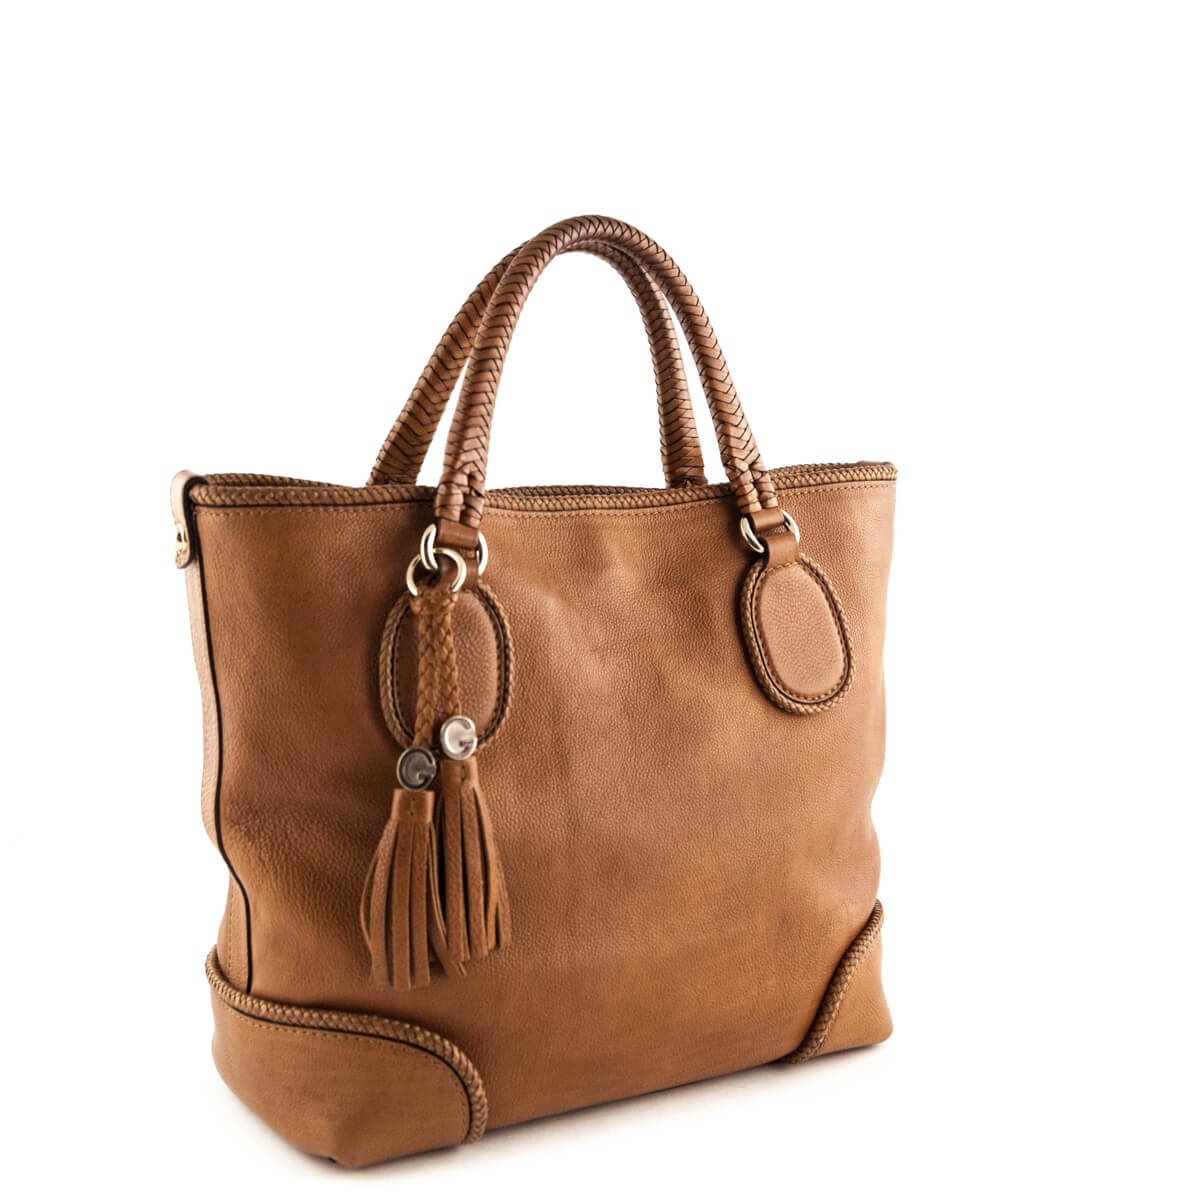 fe2dc0cd277 ... Gucci Tan Leather Braided Tote - LOVE that BAG - Preowned Authentic  Designer Handbags ...